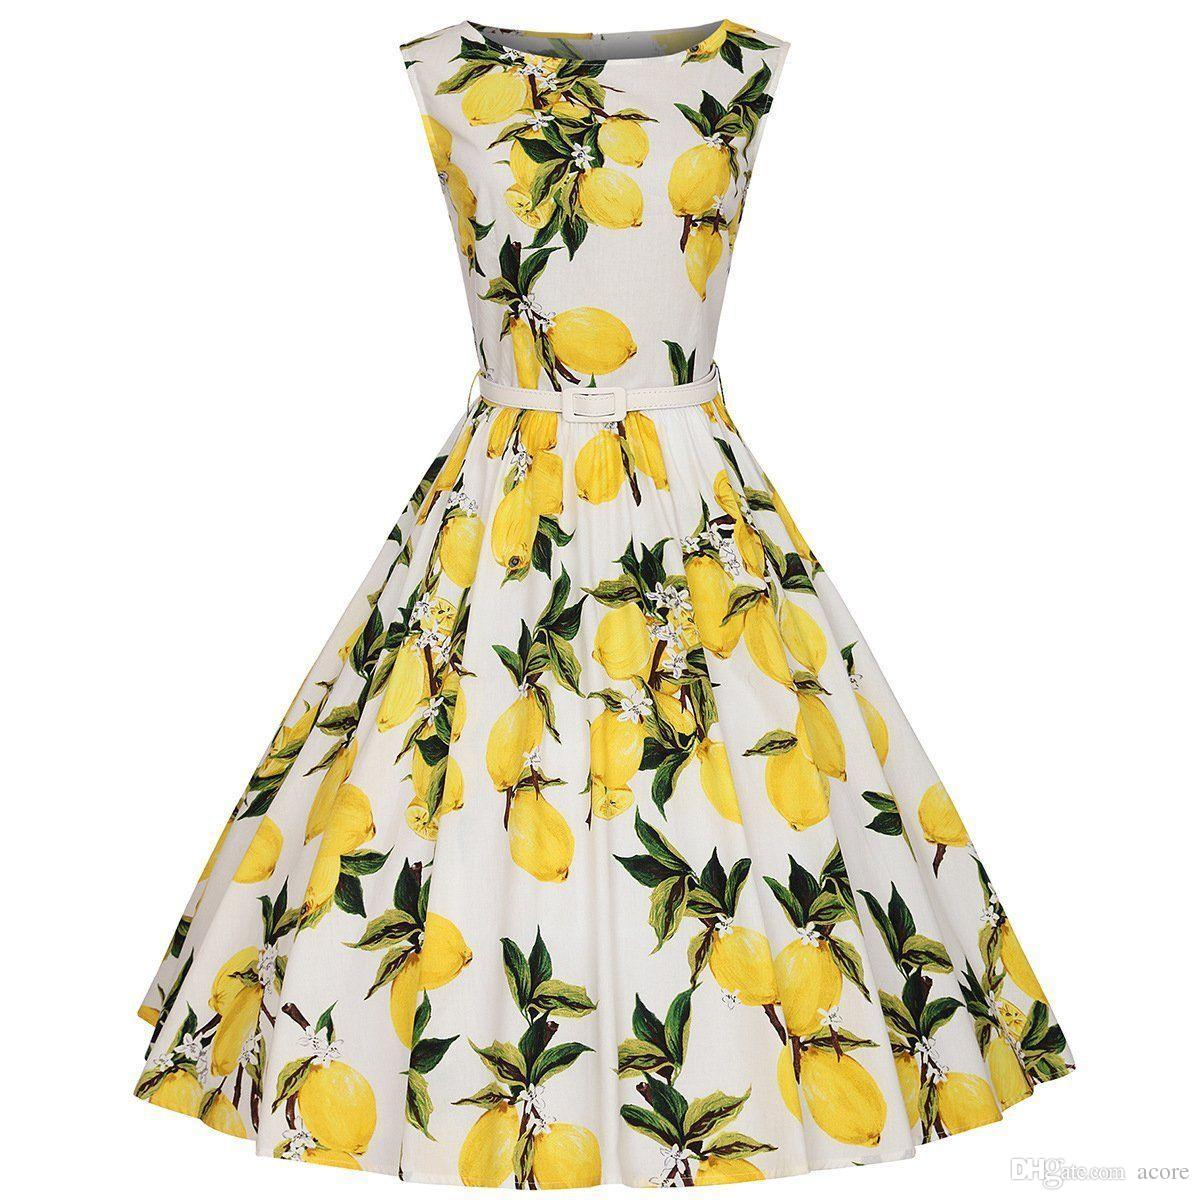 661fb173f3536 Vintage Women Summer Dresses 50s 60s Lemon Print Party Swing Dresses Midi  Rockabilly Pinup Vestido Plus Size Casual Dress Chiffon Dresses From Acore,  ...